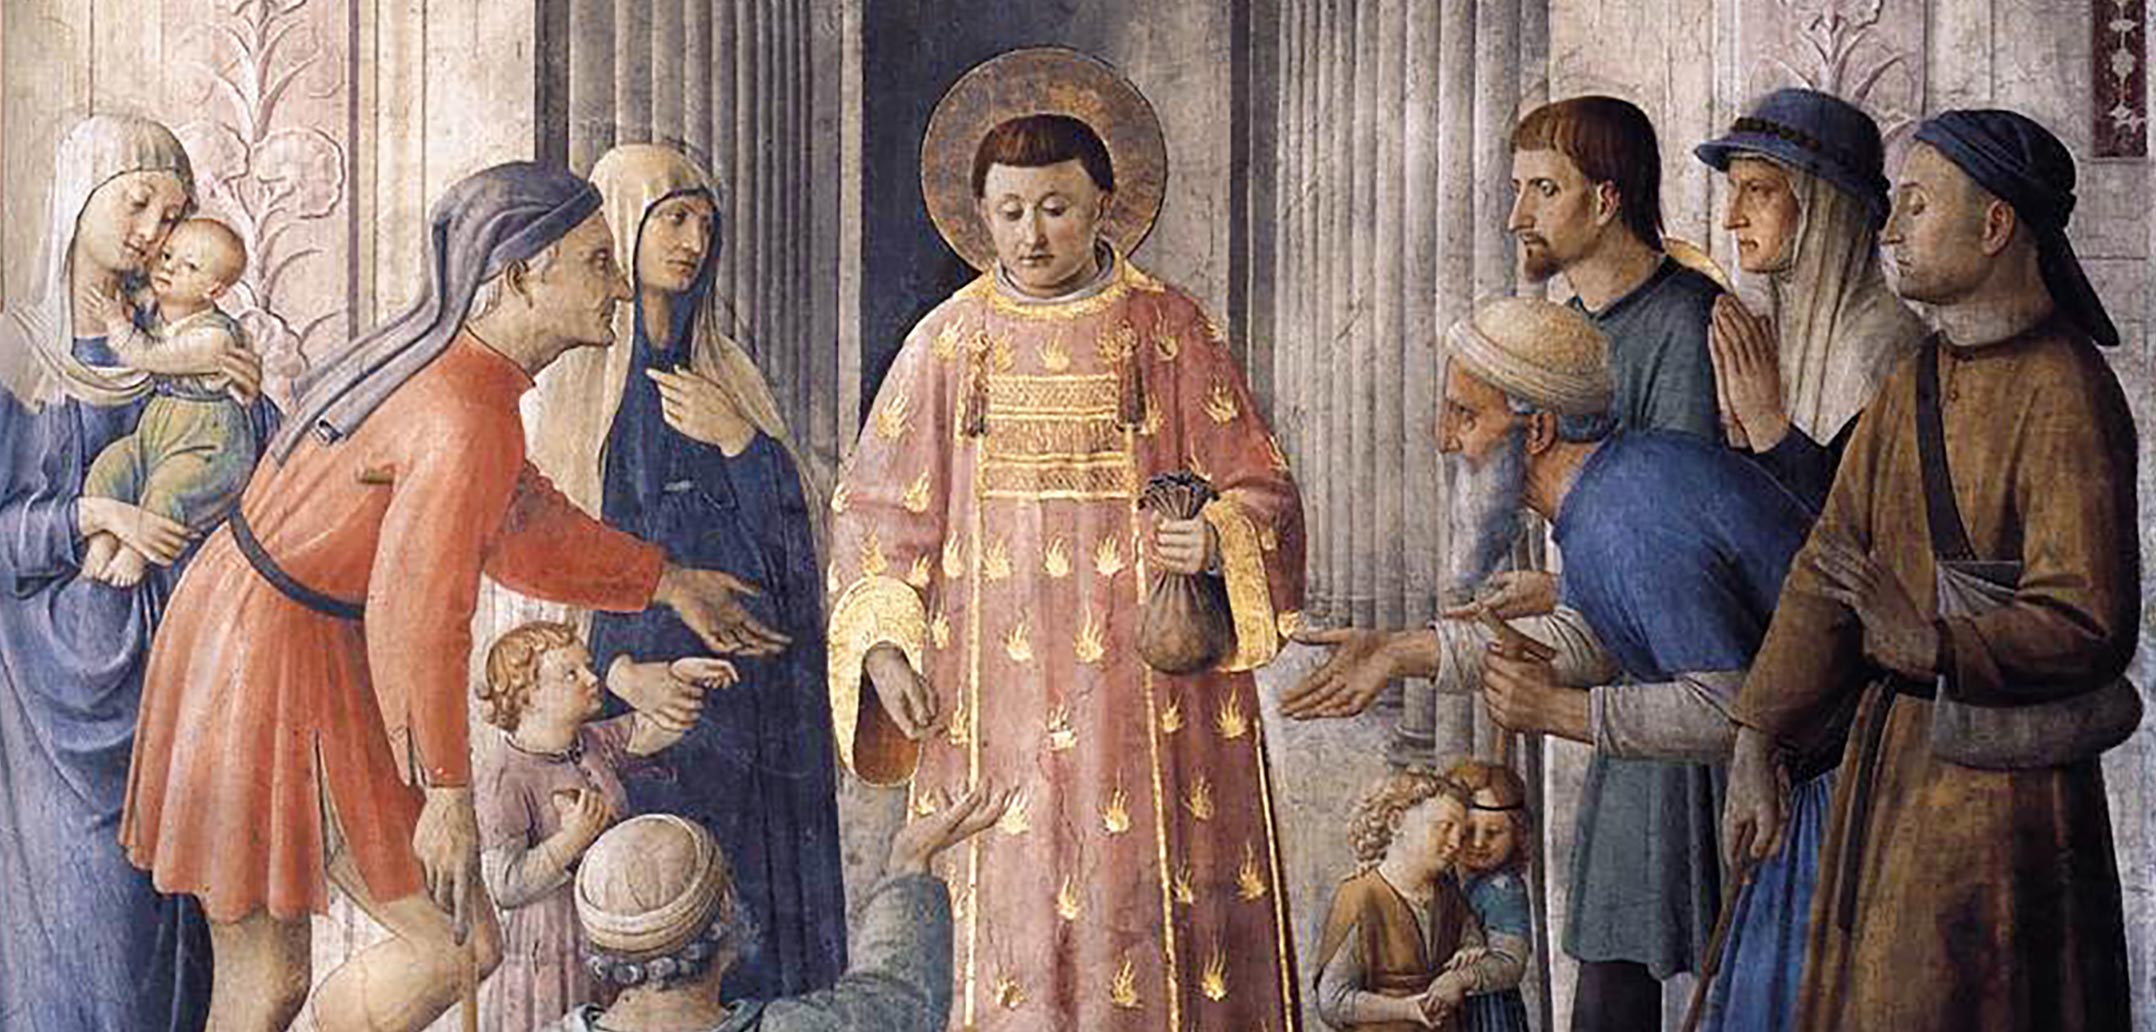 St Laurence (Fra Angelico)